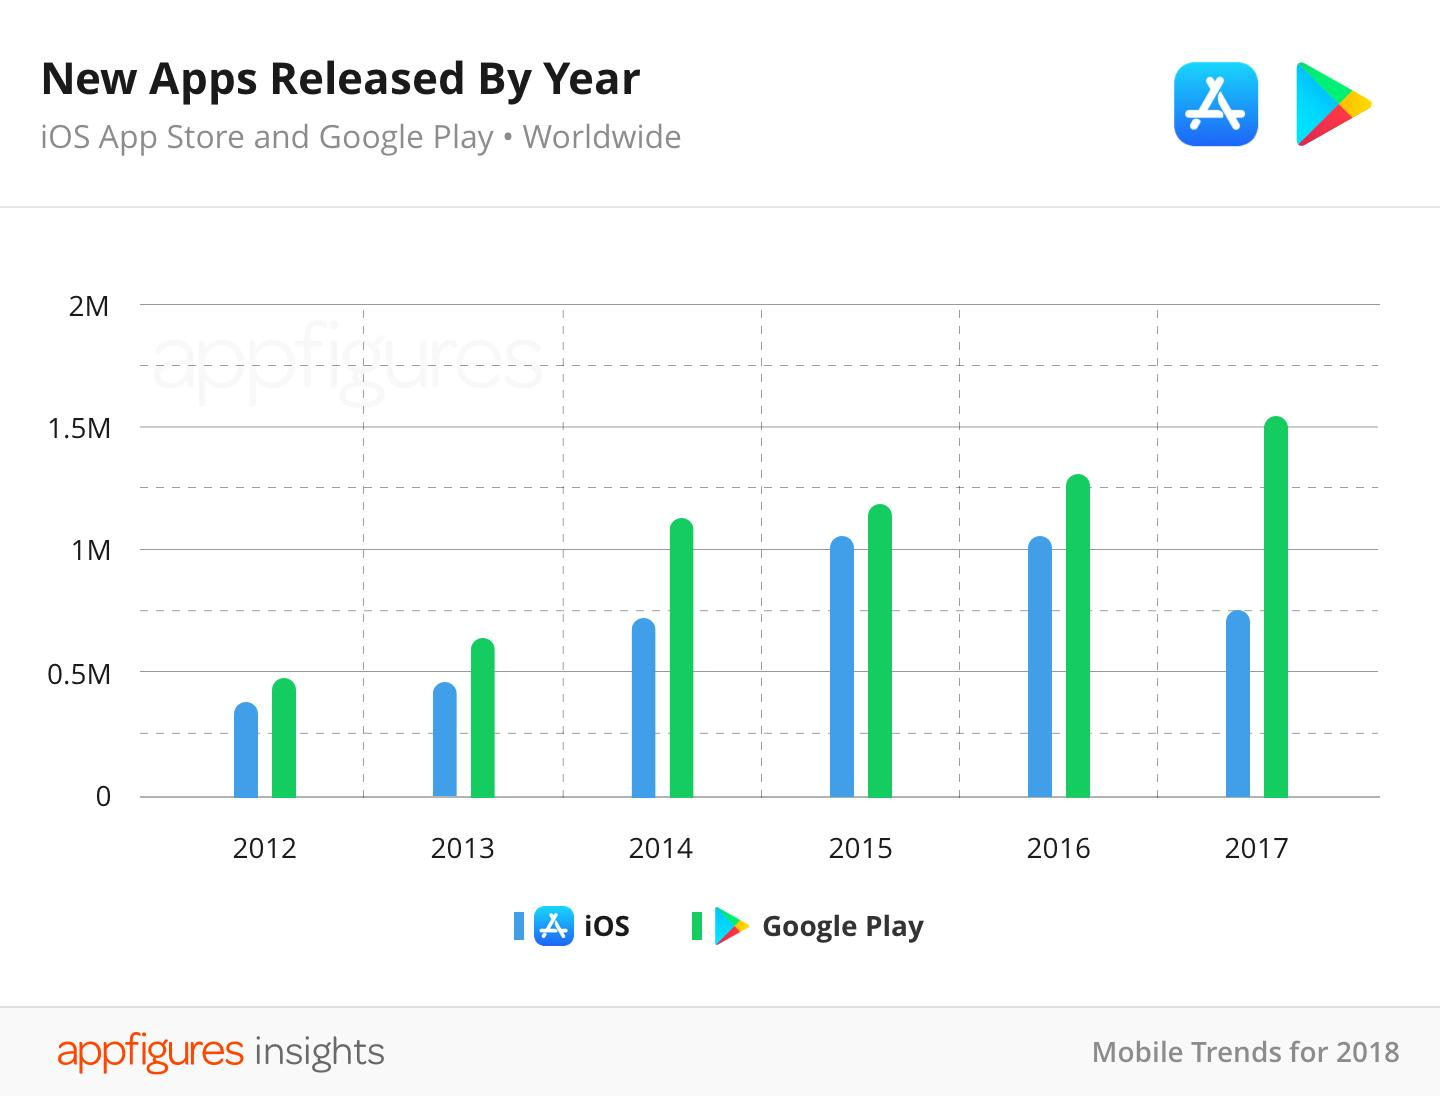 New Apps Released By Year